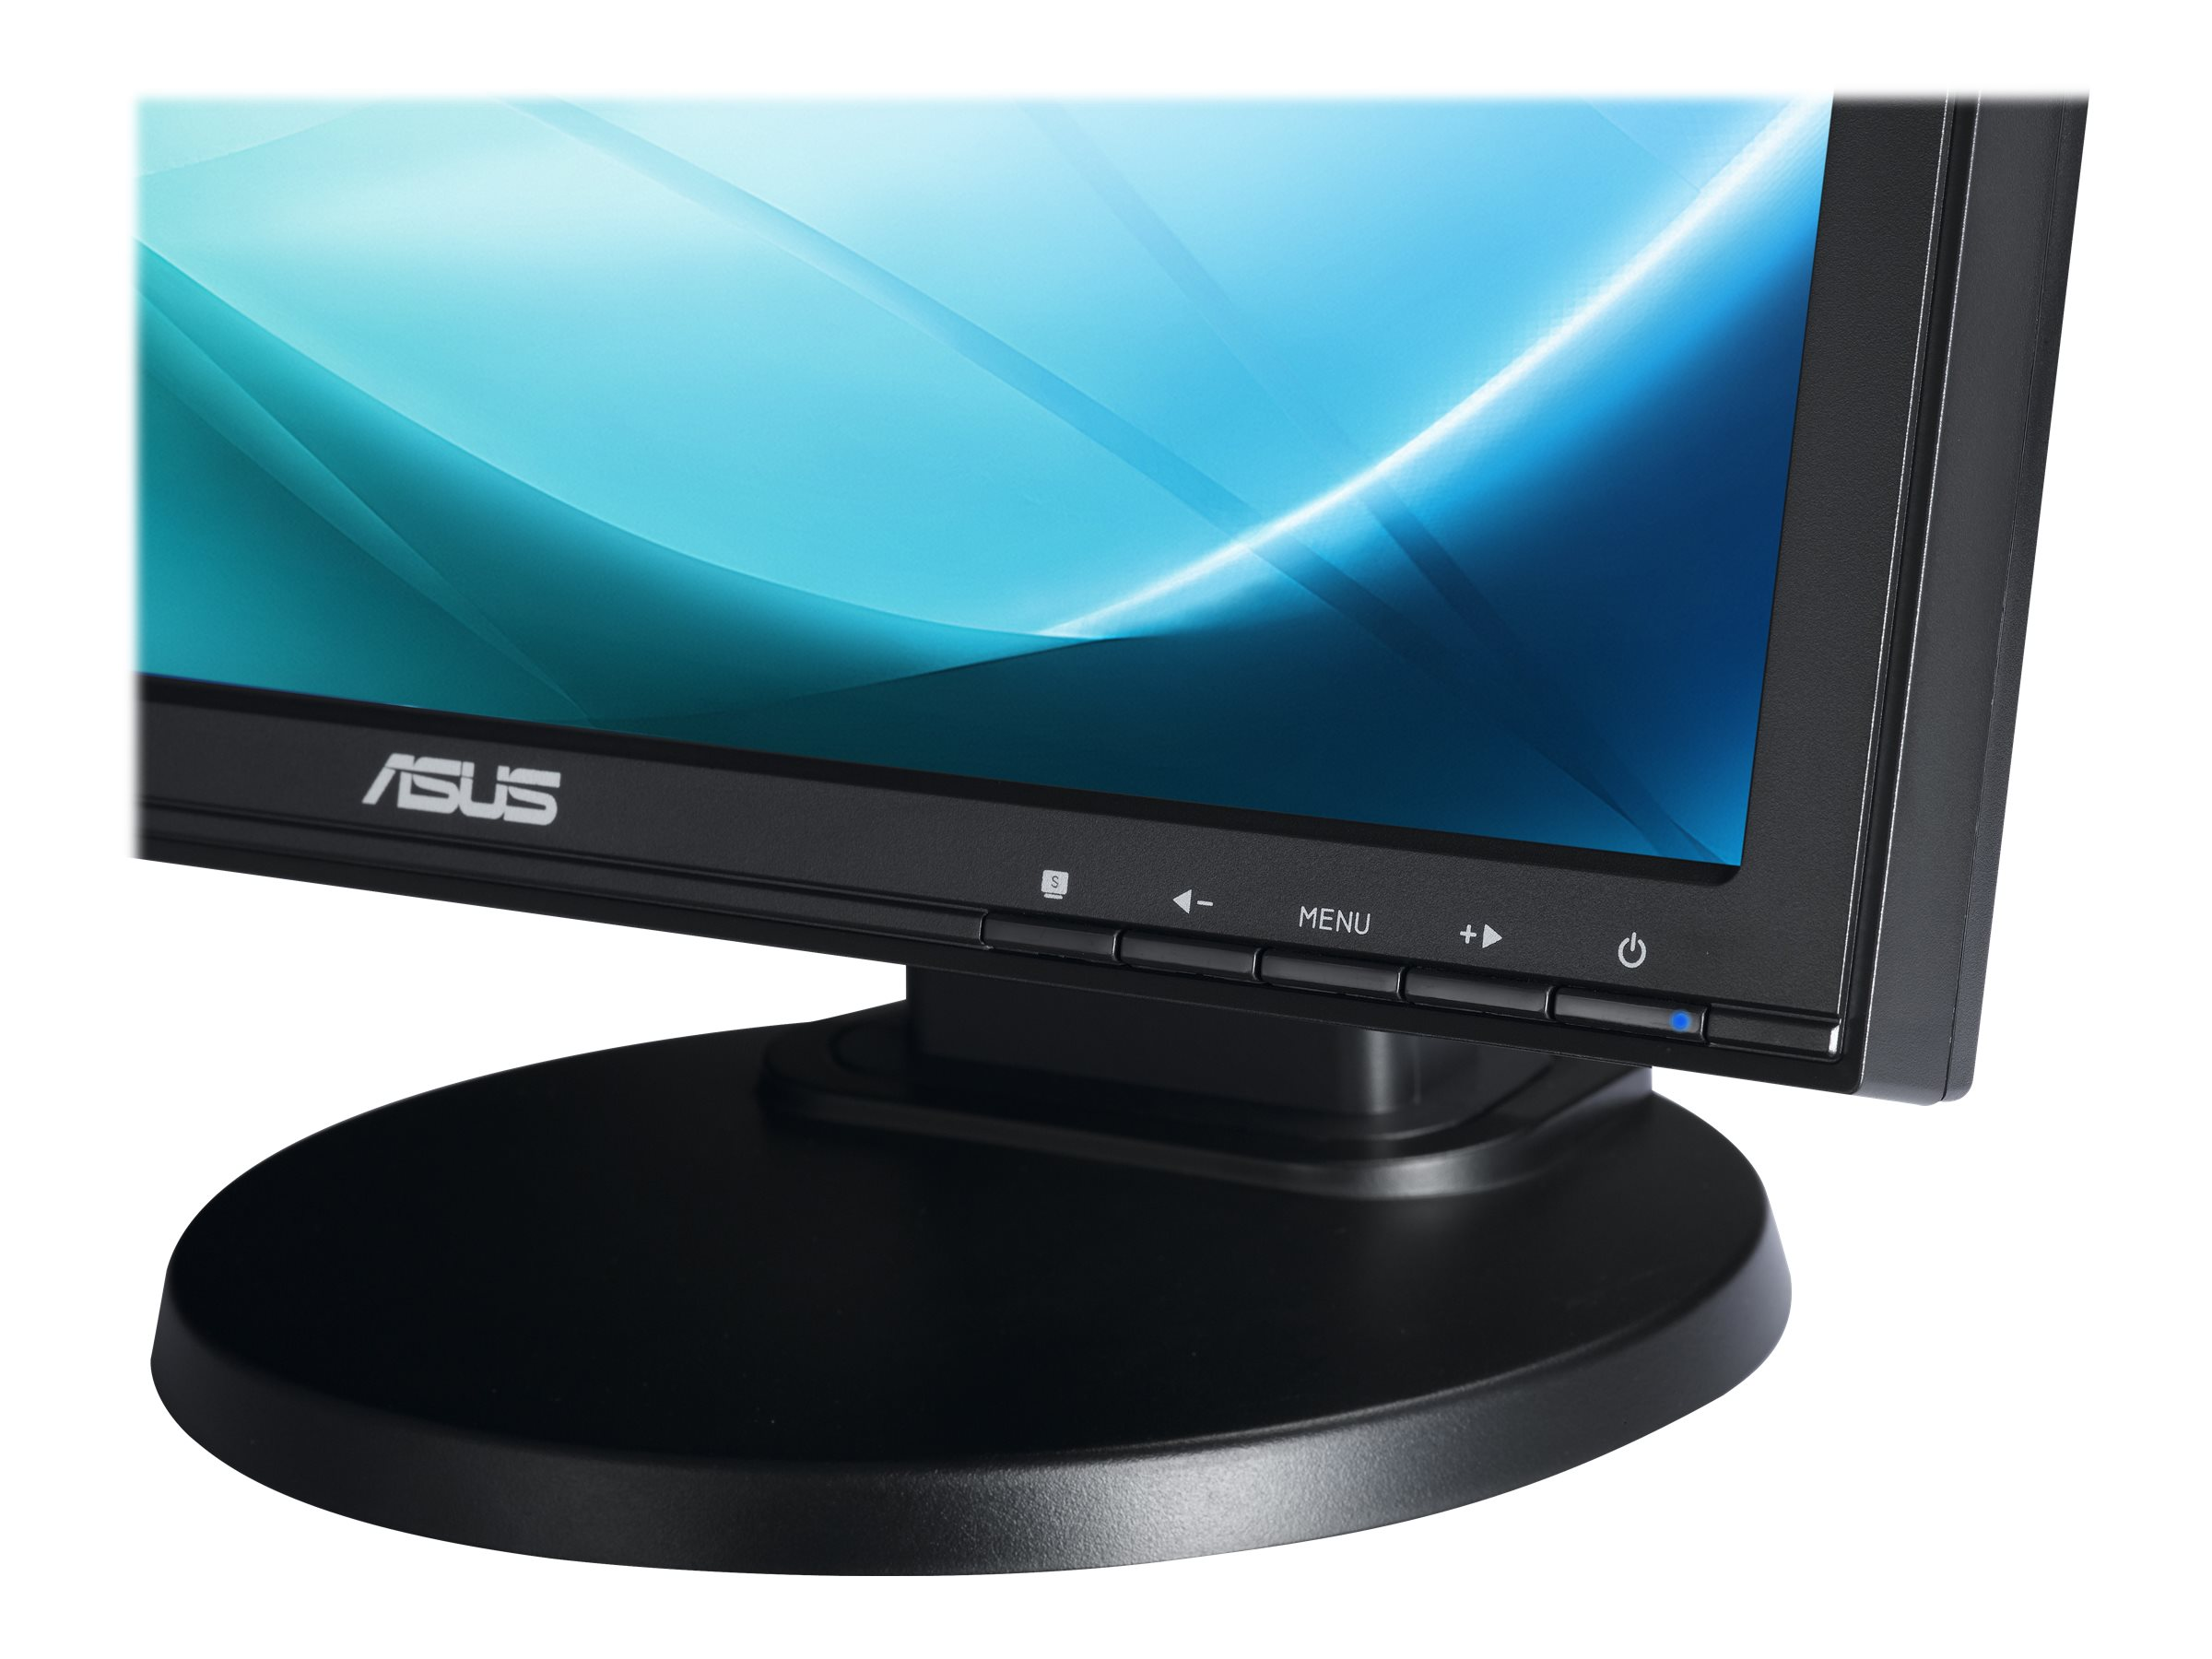 Asus 19 VB199T-P LED-LCD Monitor, Black, VB199T-P